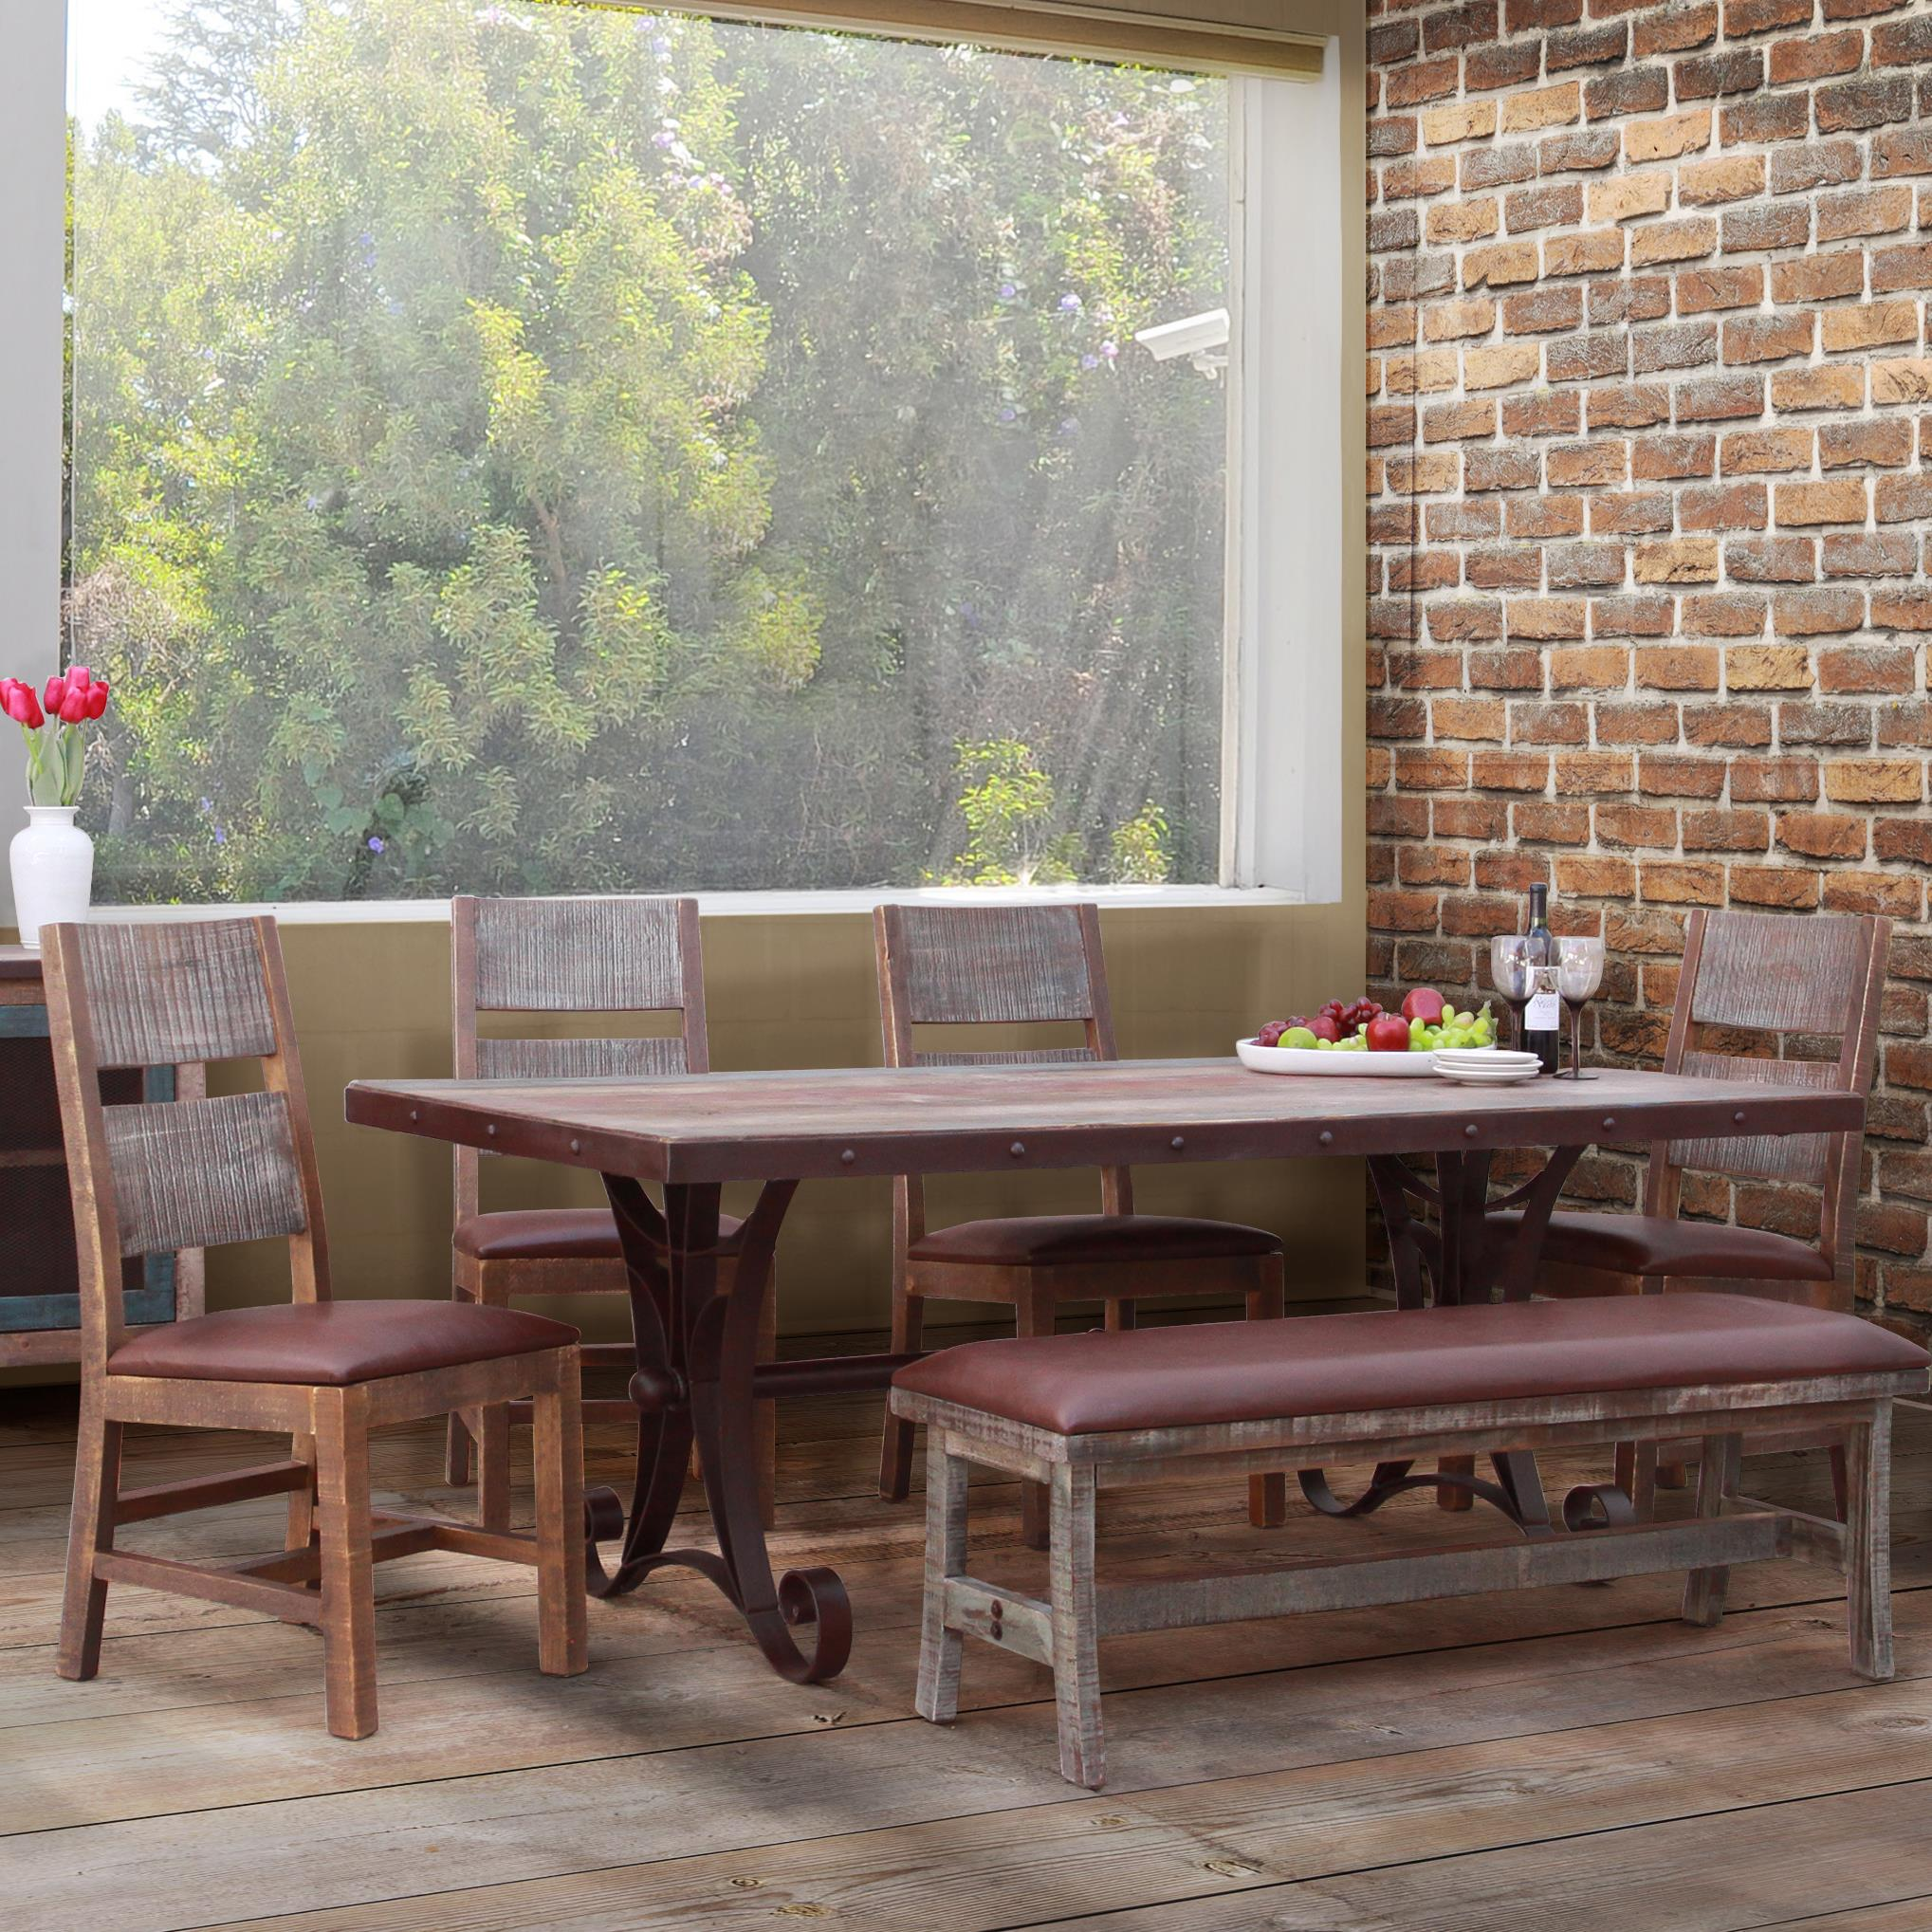 900 Antique 6 Piece Dining Set with Bench by IFD International Furniture Direct at Suburban Furniture